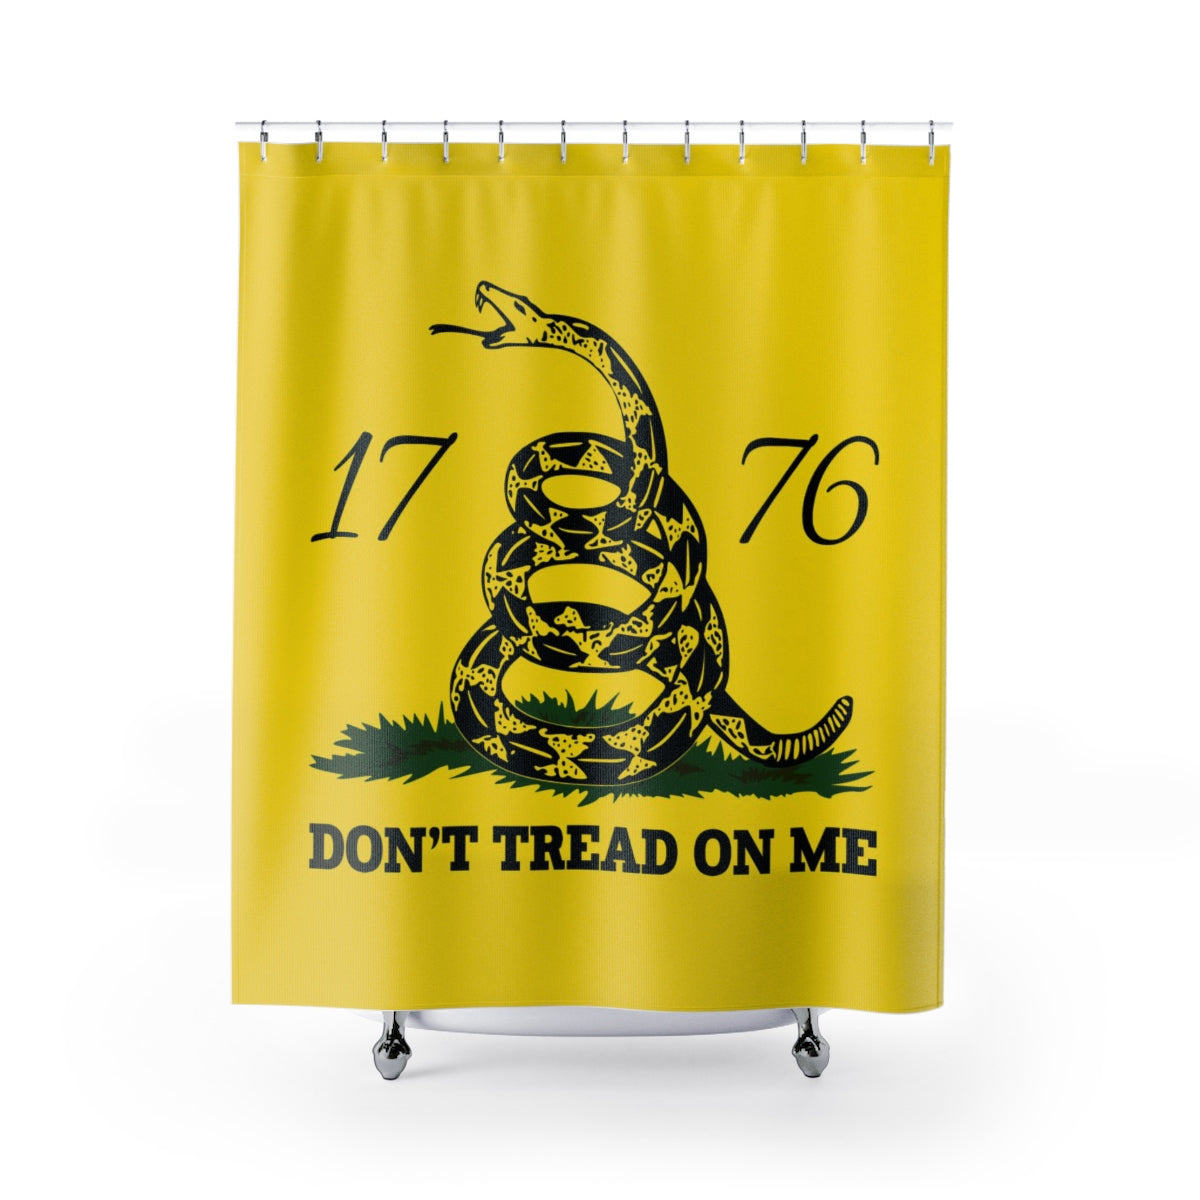 Don't Tread on Me Shower Curtains